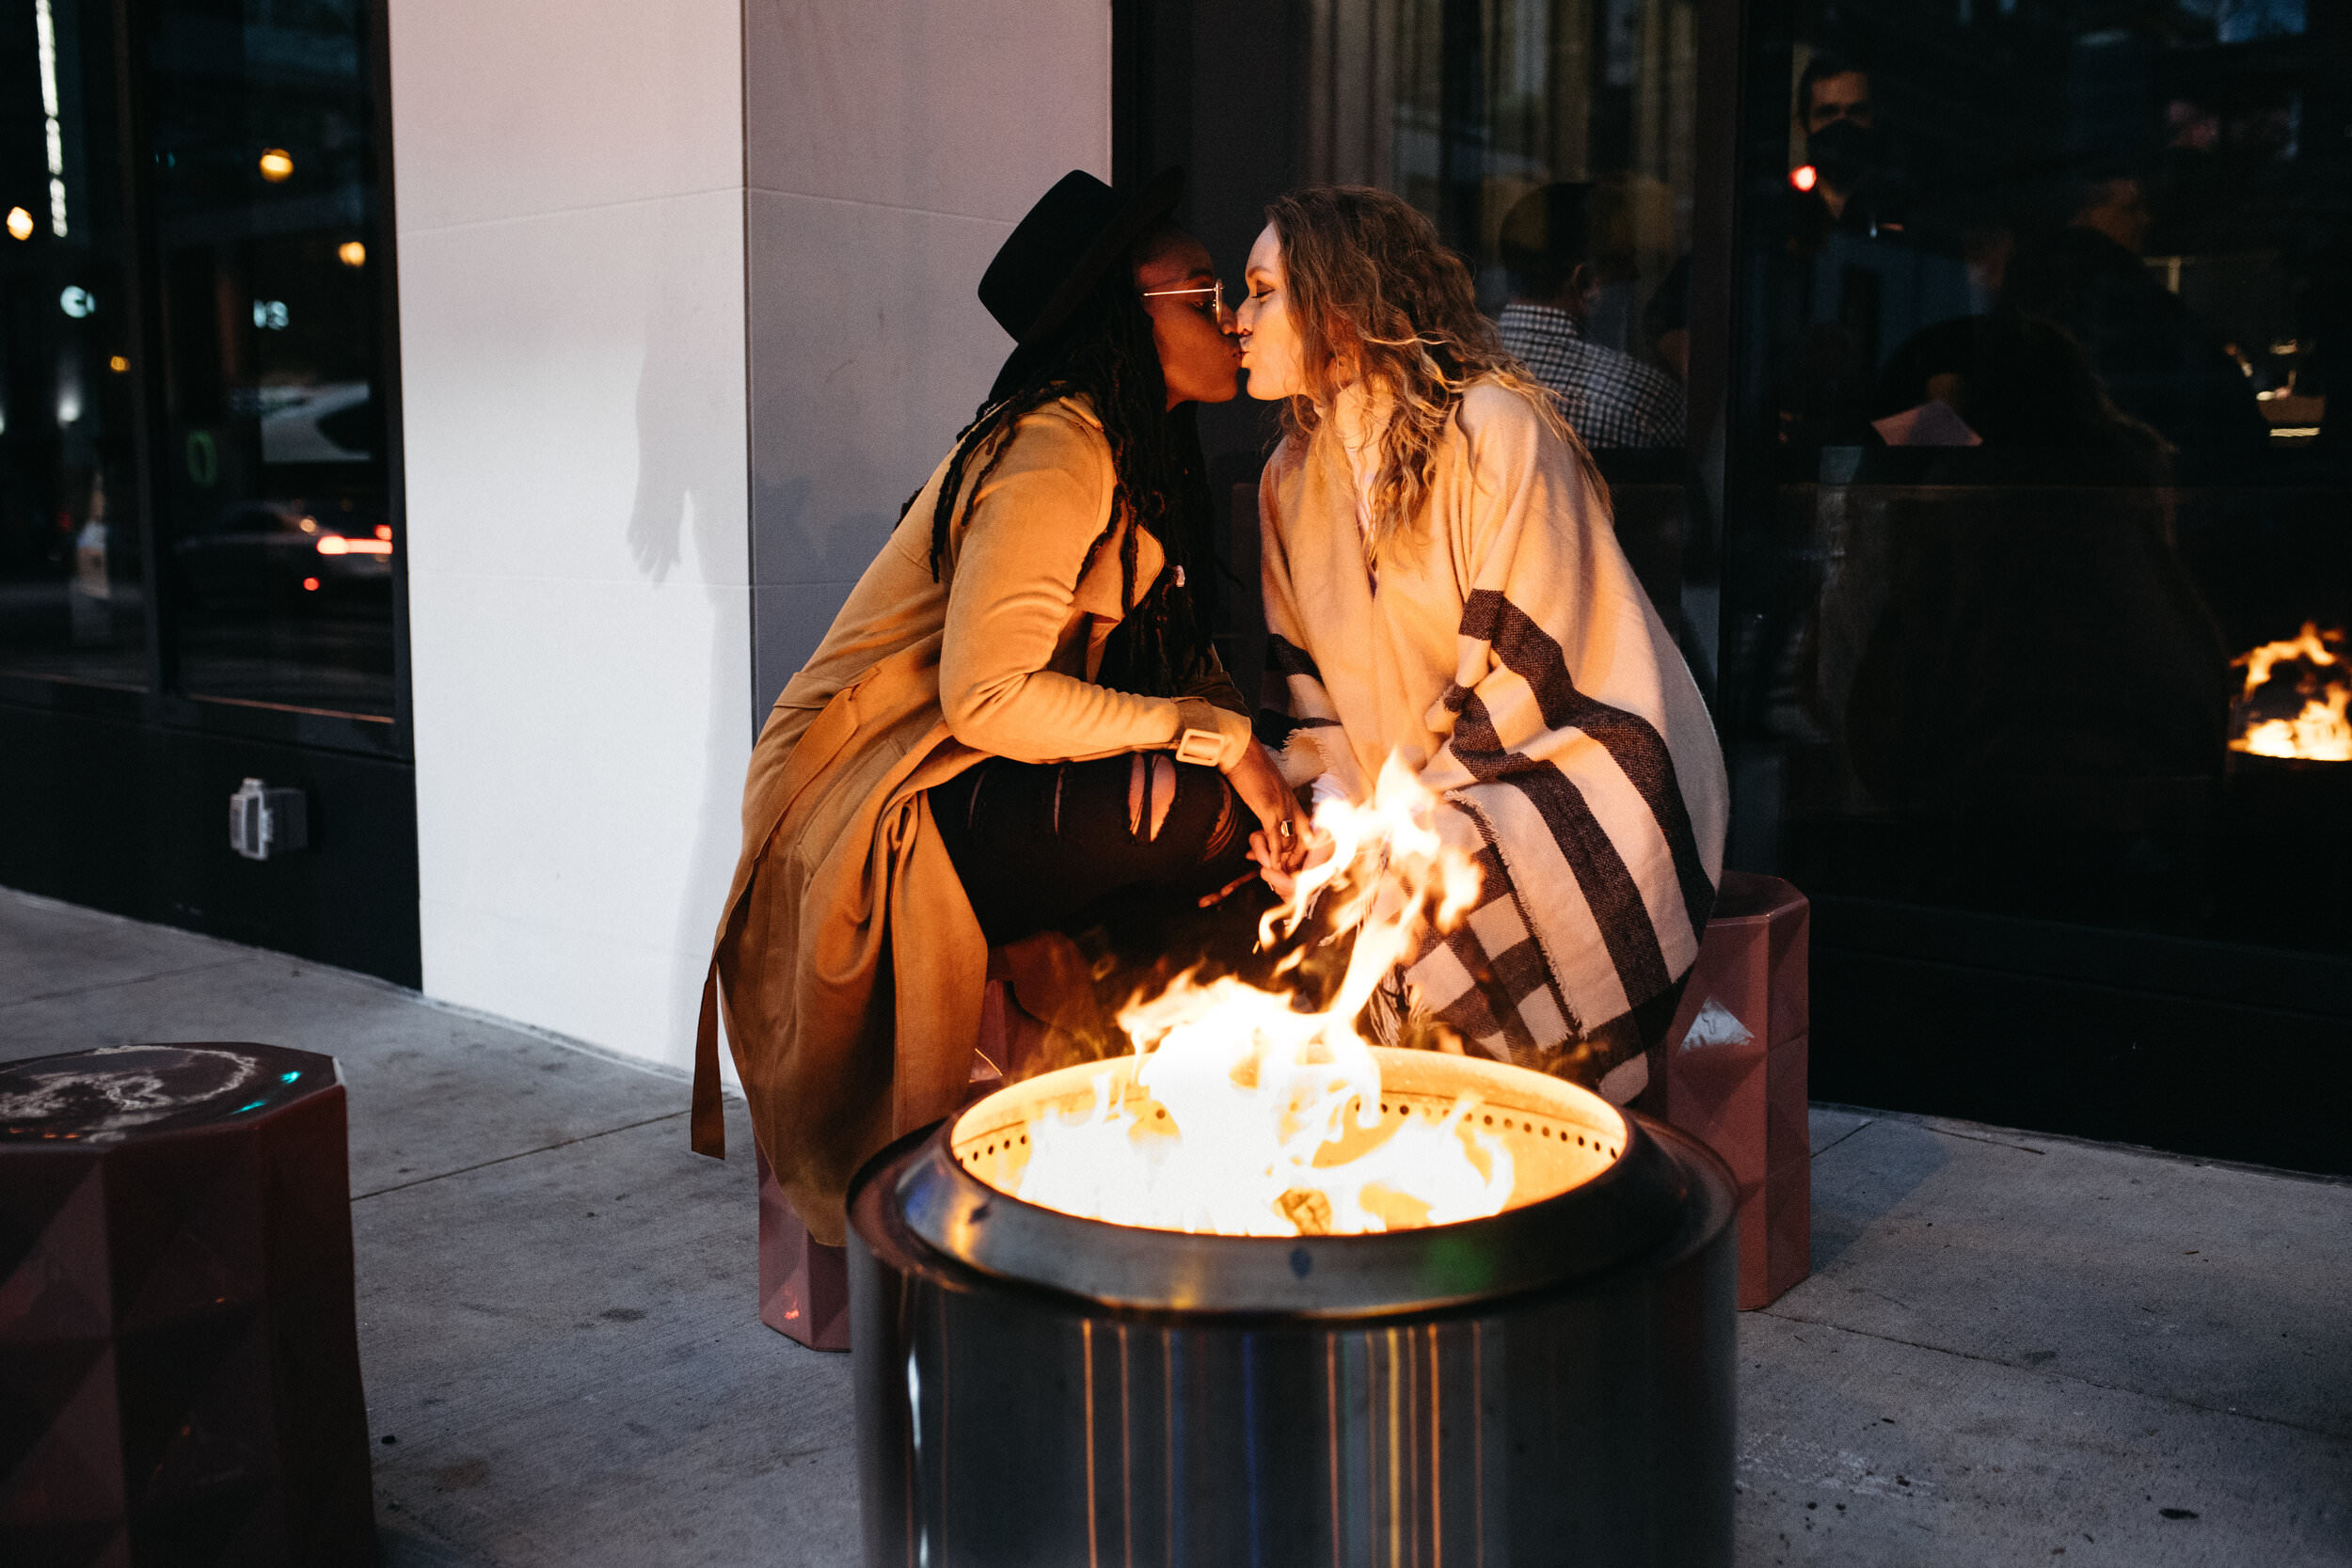 a lesbian couple kisses and sits next to a fire bin